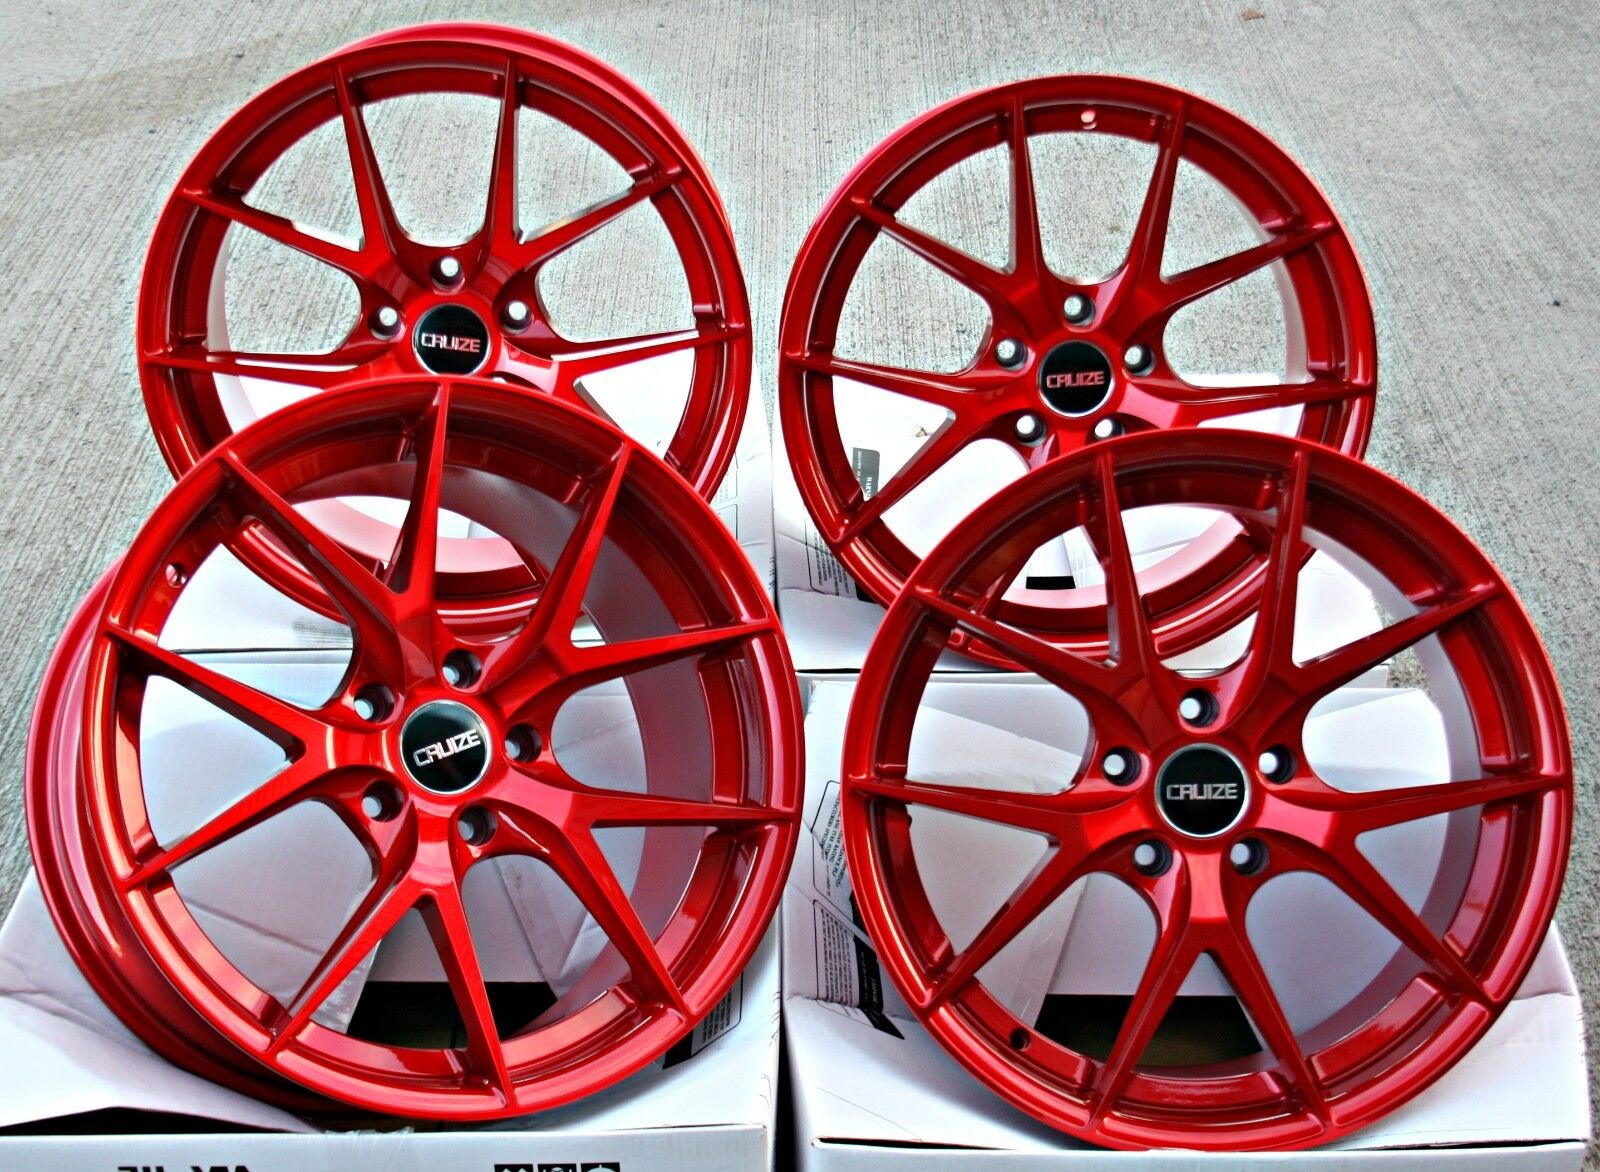 Alloy Wheels 19 Cruize Gto Cr Candy Red Concavt Staggered 19 Inch 5x120 Alloys For Sale Online Ebay